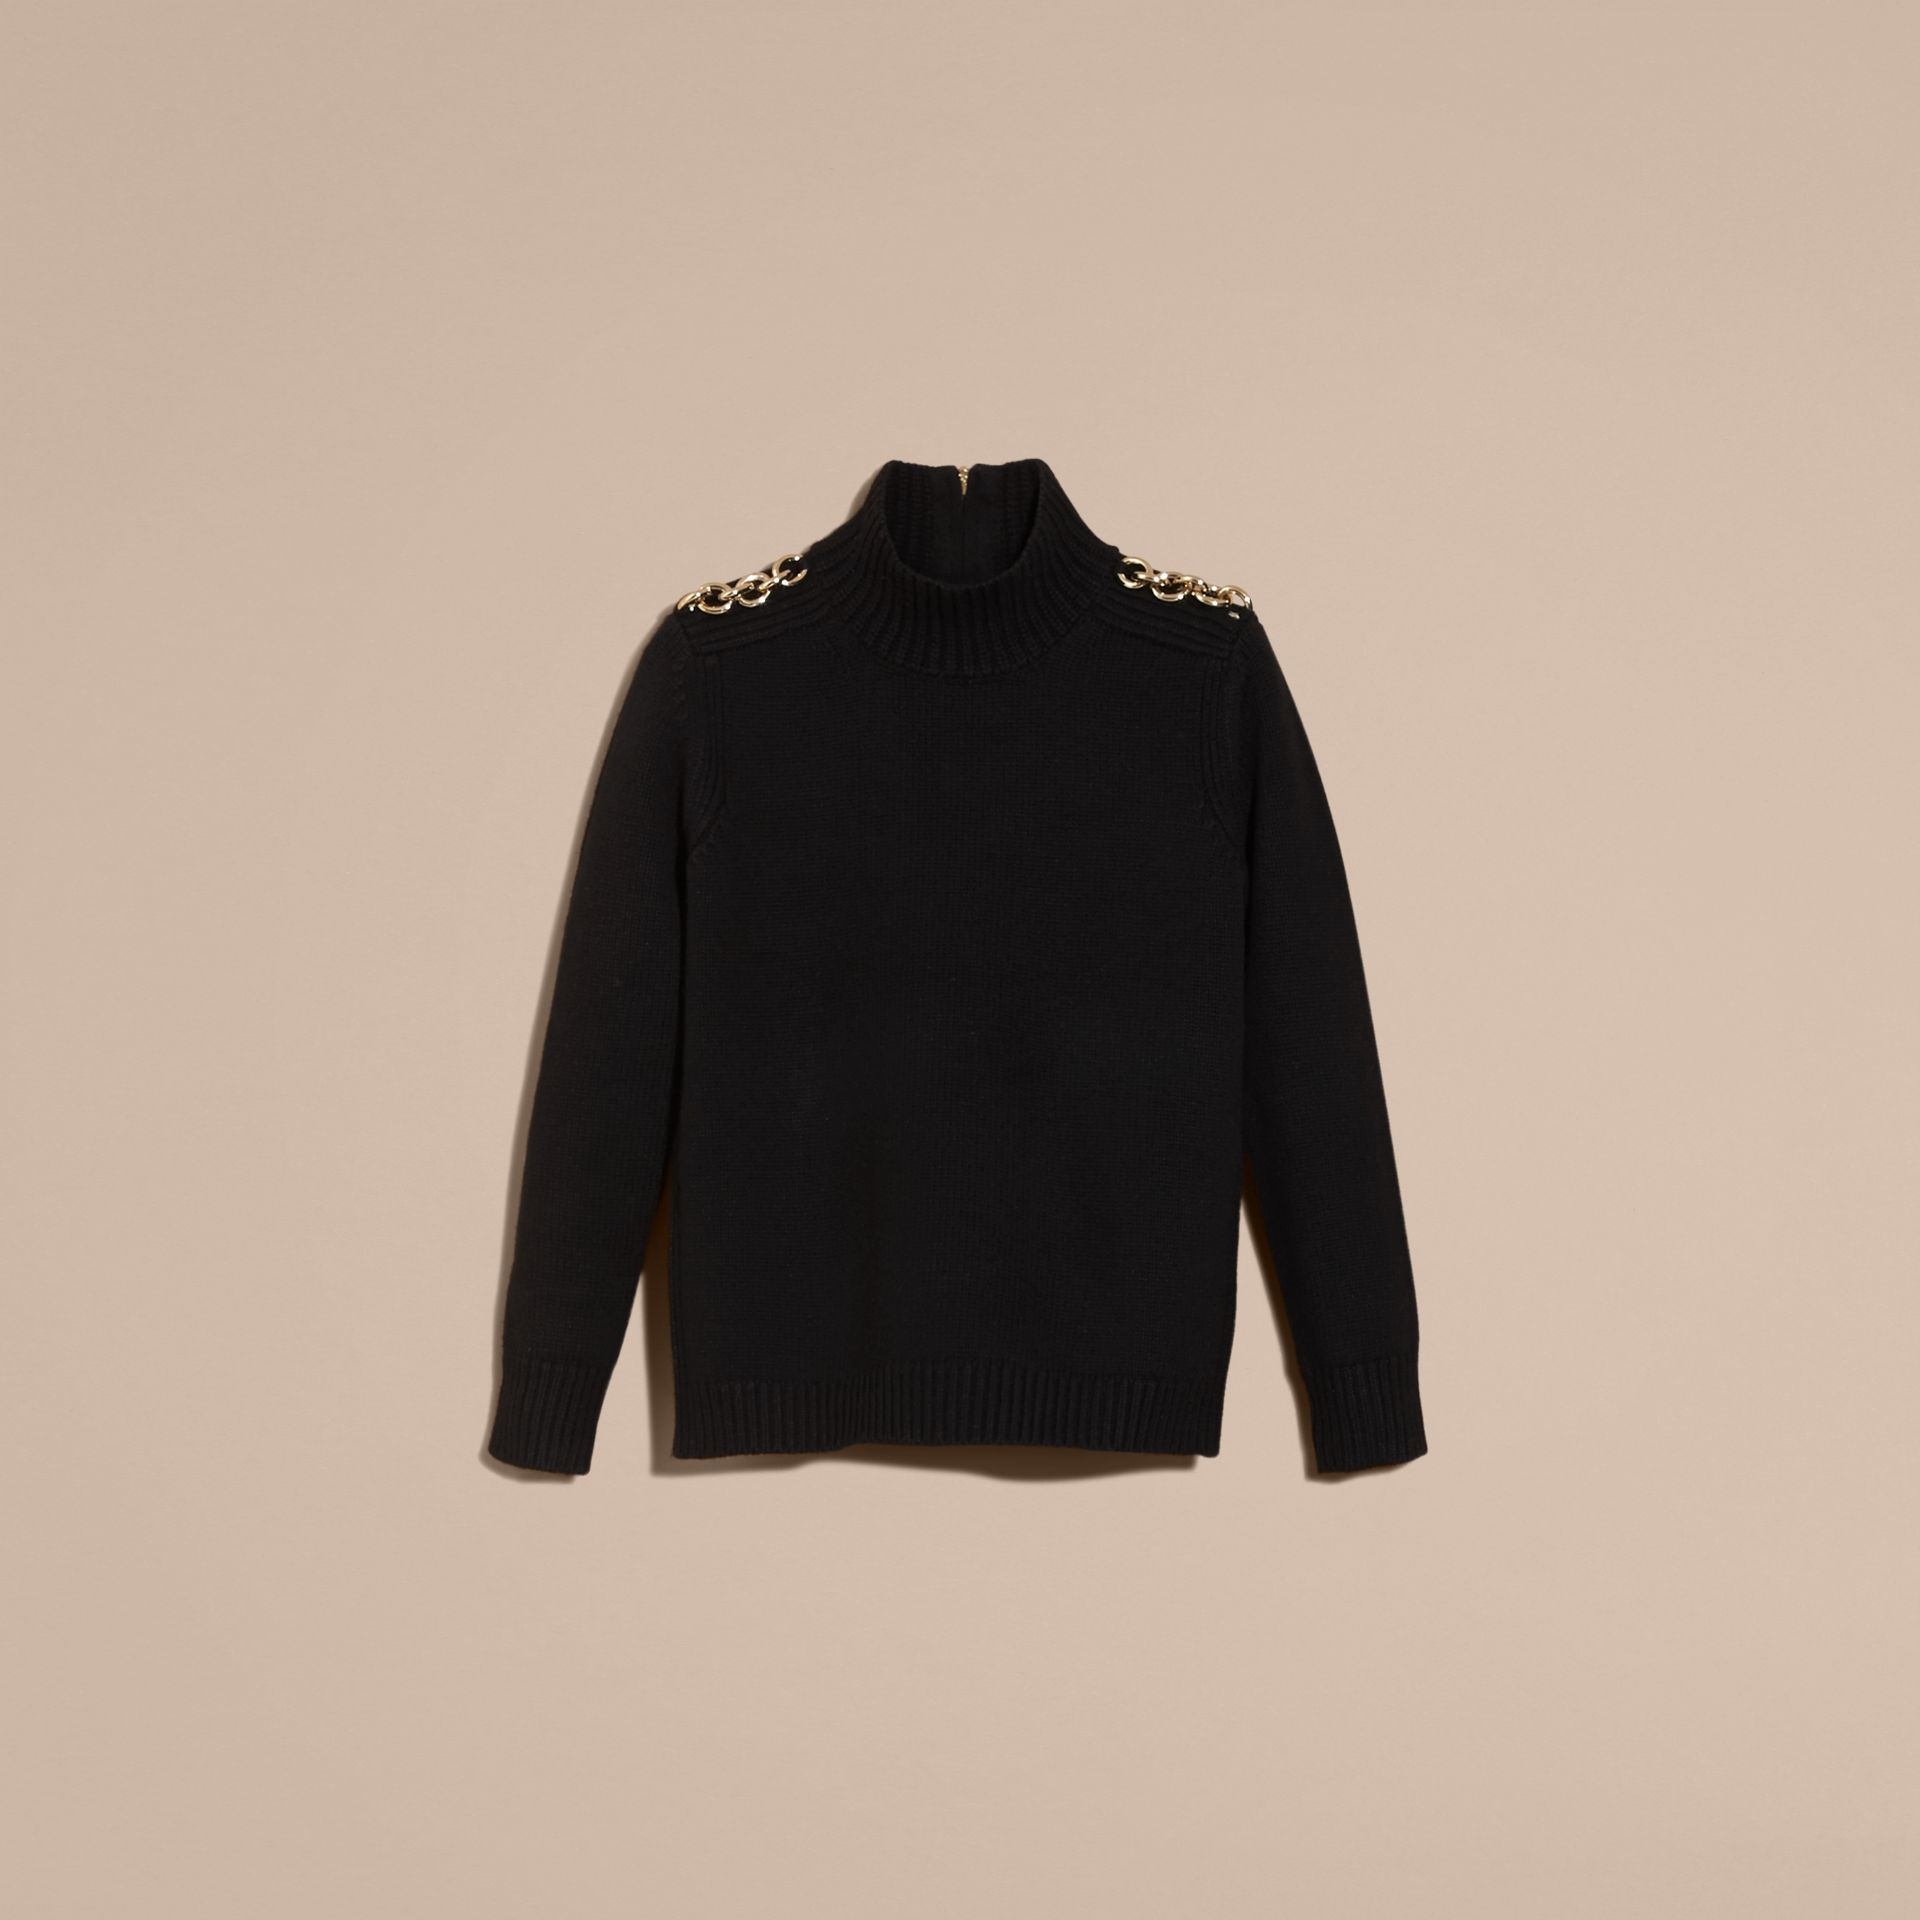 Black Regimental Detail Wool Cashmere High-neck Sweater - gallery image 4